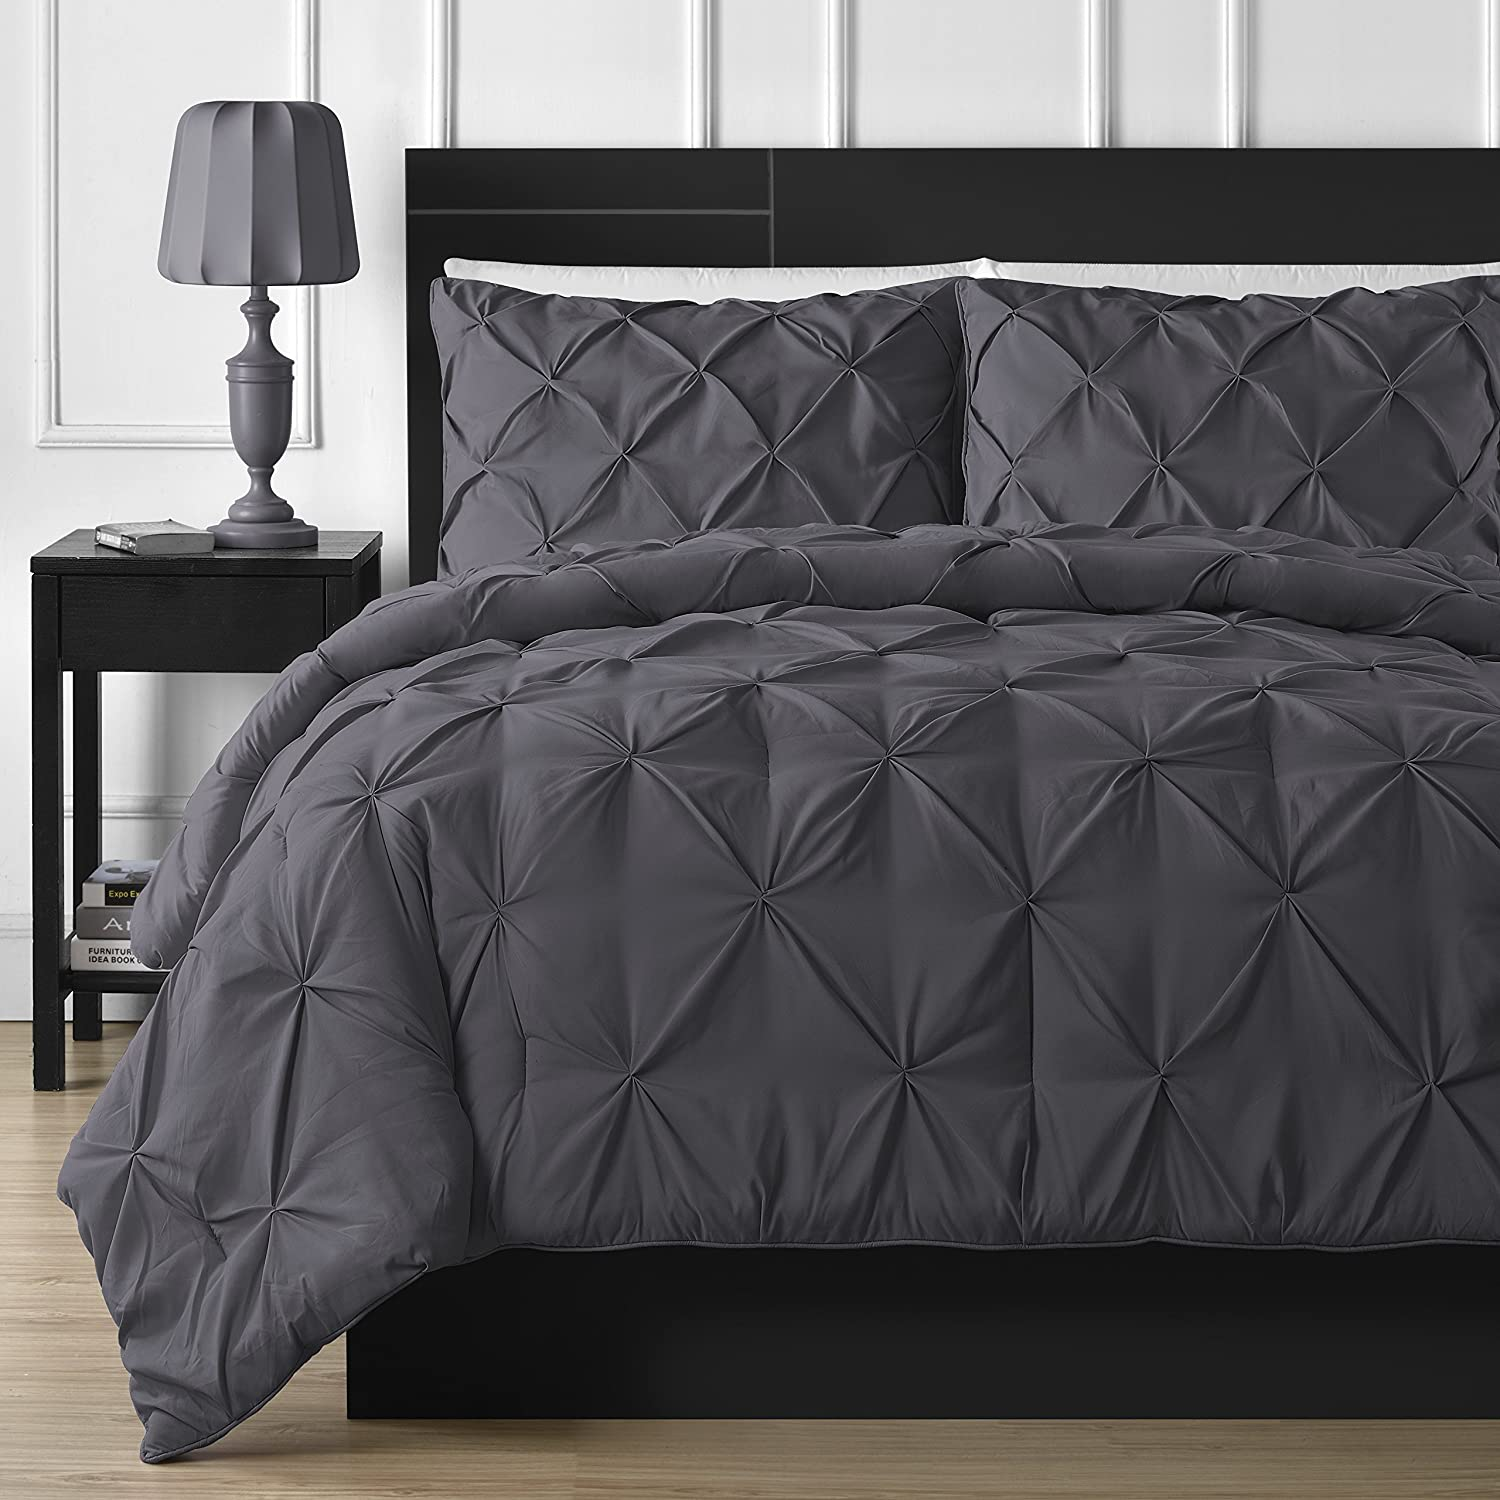 Comfy Bedding 3-Piece Pinch Pleat Comforter Set All Season Pintuck Style Double Needle Durable Stitching, King Gray